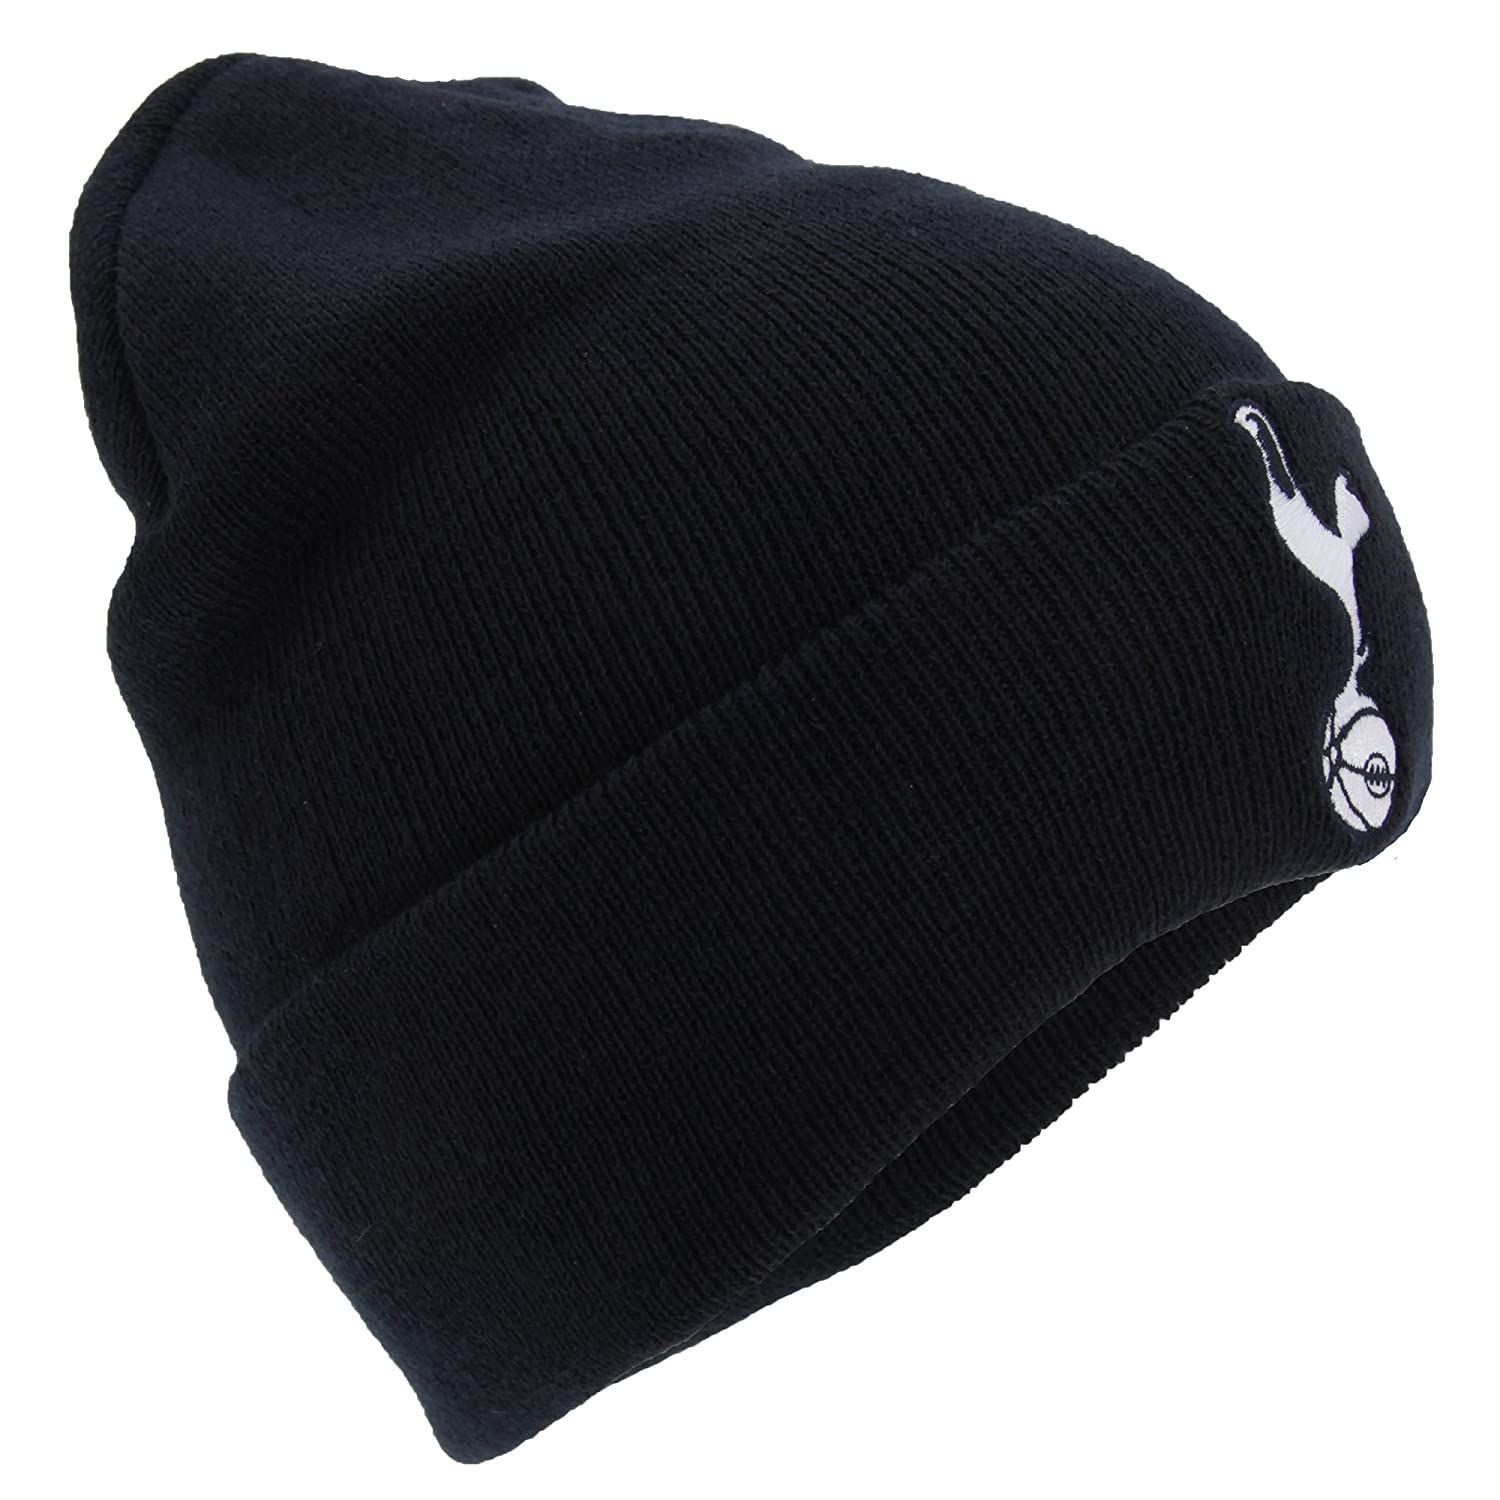 Tottenham Hotspur FC Official Adults Knitted Soccer Crest Winter Beanie Hat